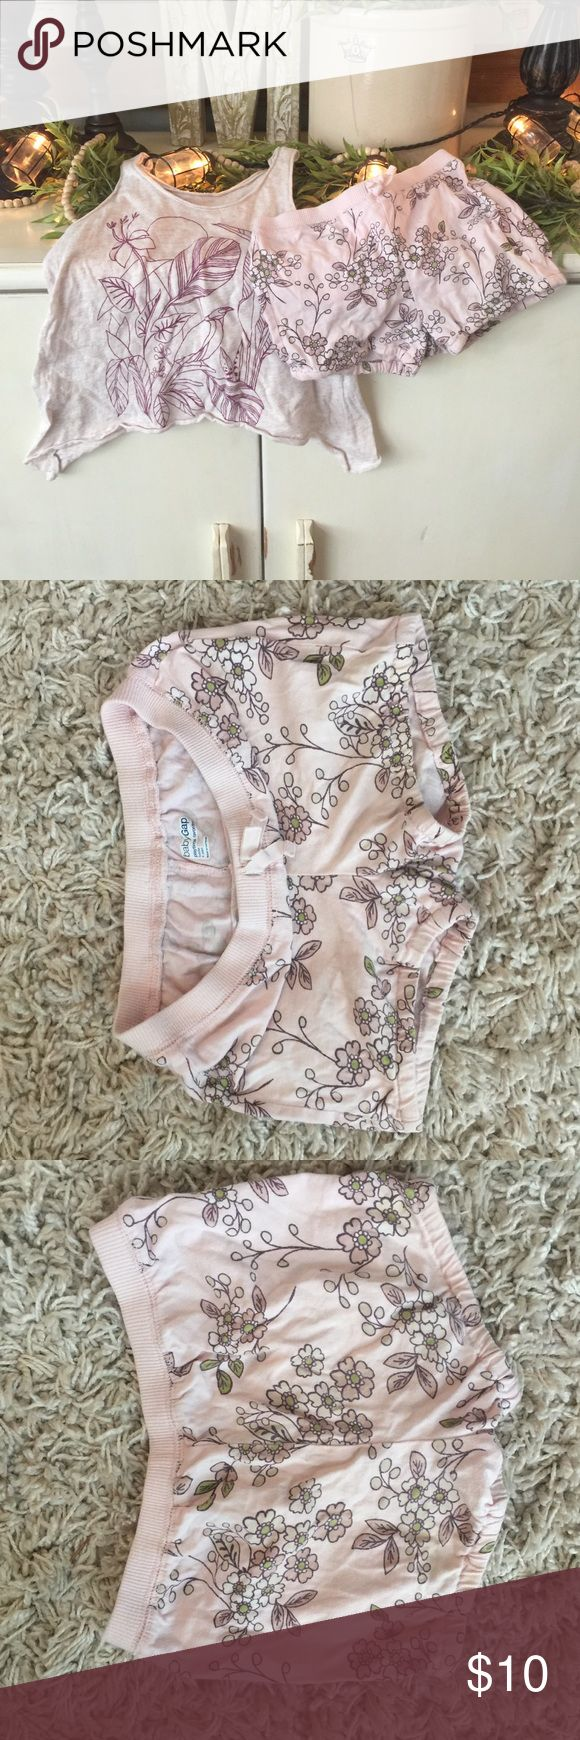 Girls gap and old navy summer outfit Old navy tank top size 5 and gap shorts size 4 but fits a 5 they are wide on the waist... gap and old navy Matching Sets